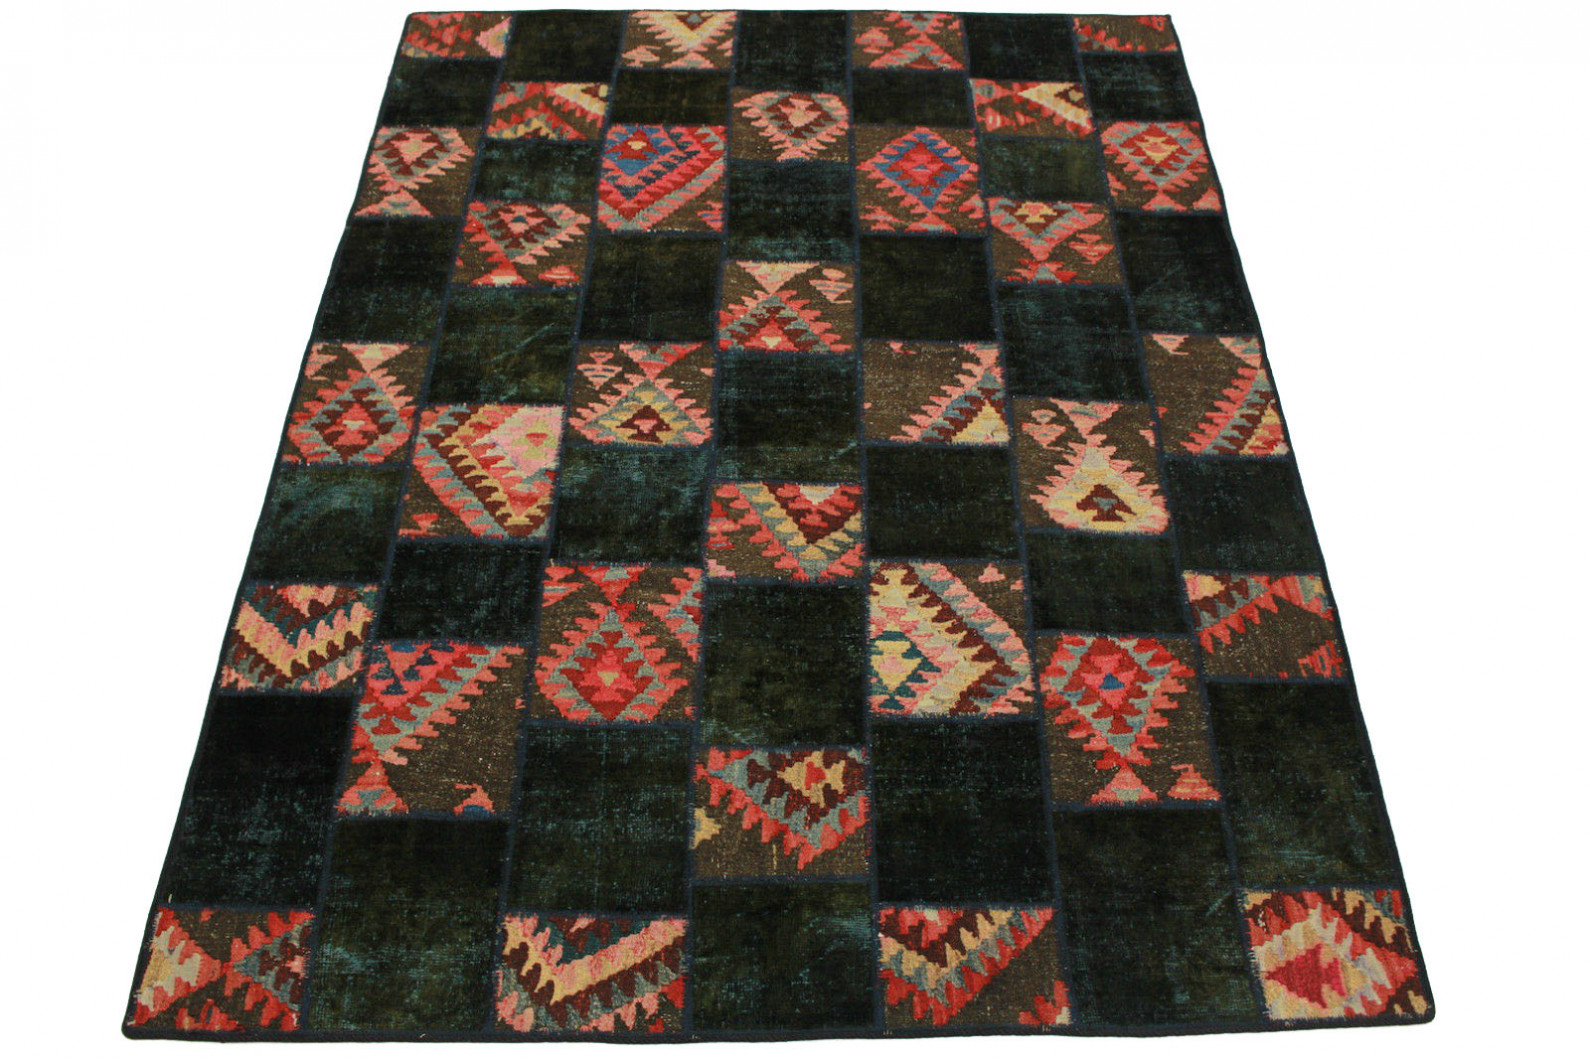 Patchwork Teppich Rosa Oliv in 240x180cm